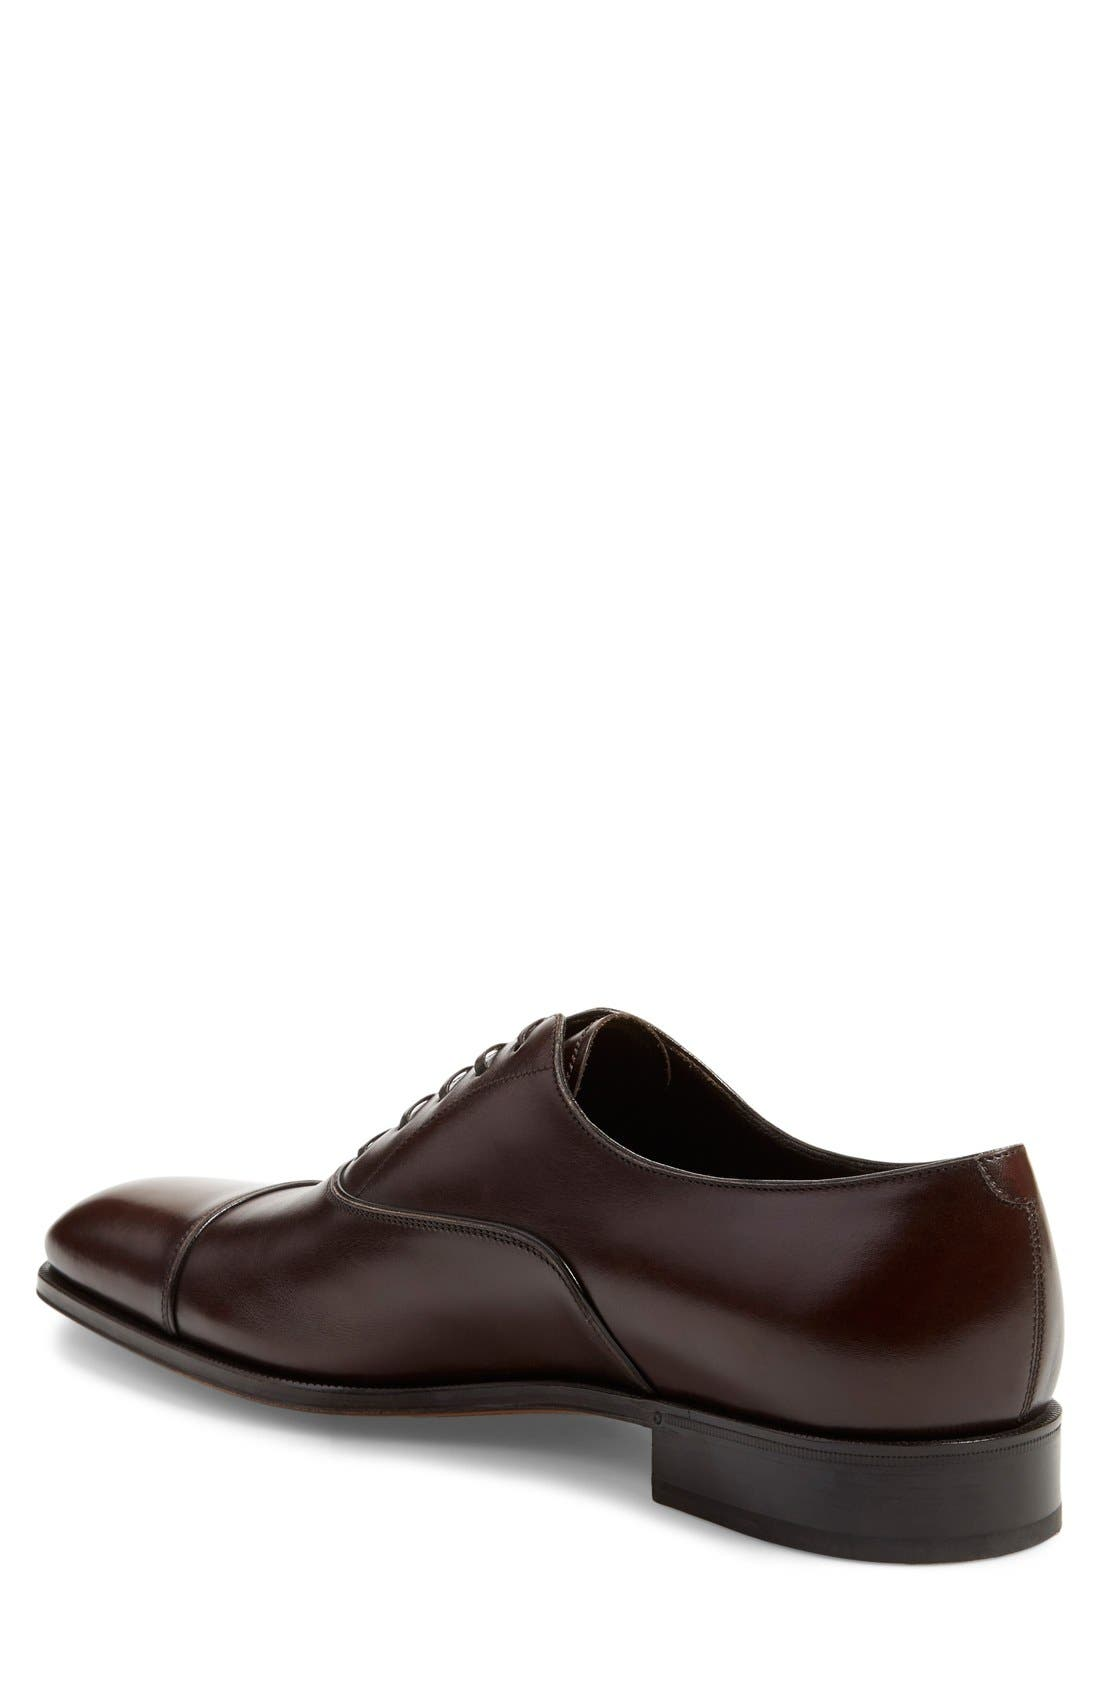 Luce Cap Toe Oxford,                             Alternate thumbnail 2, color,                             200